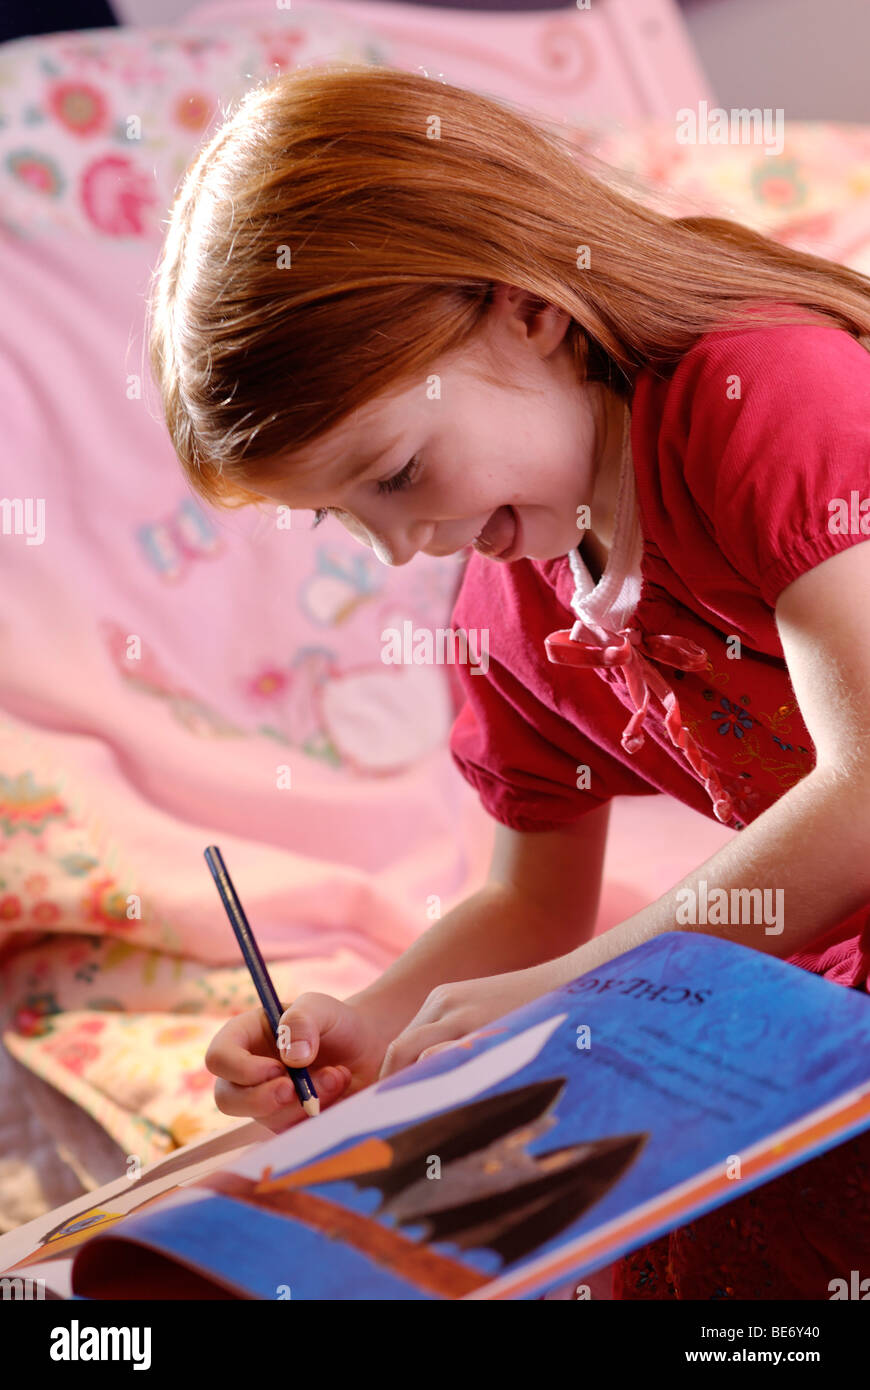 Little girl holding a pencil in her hand and writing or drawing - Stock Image